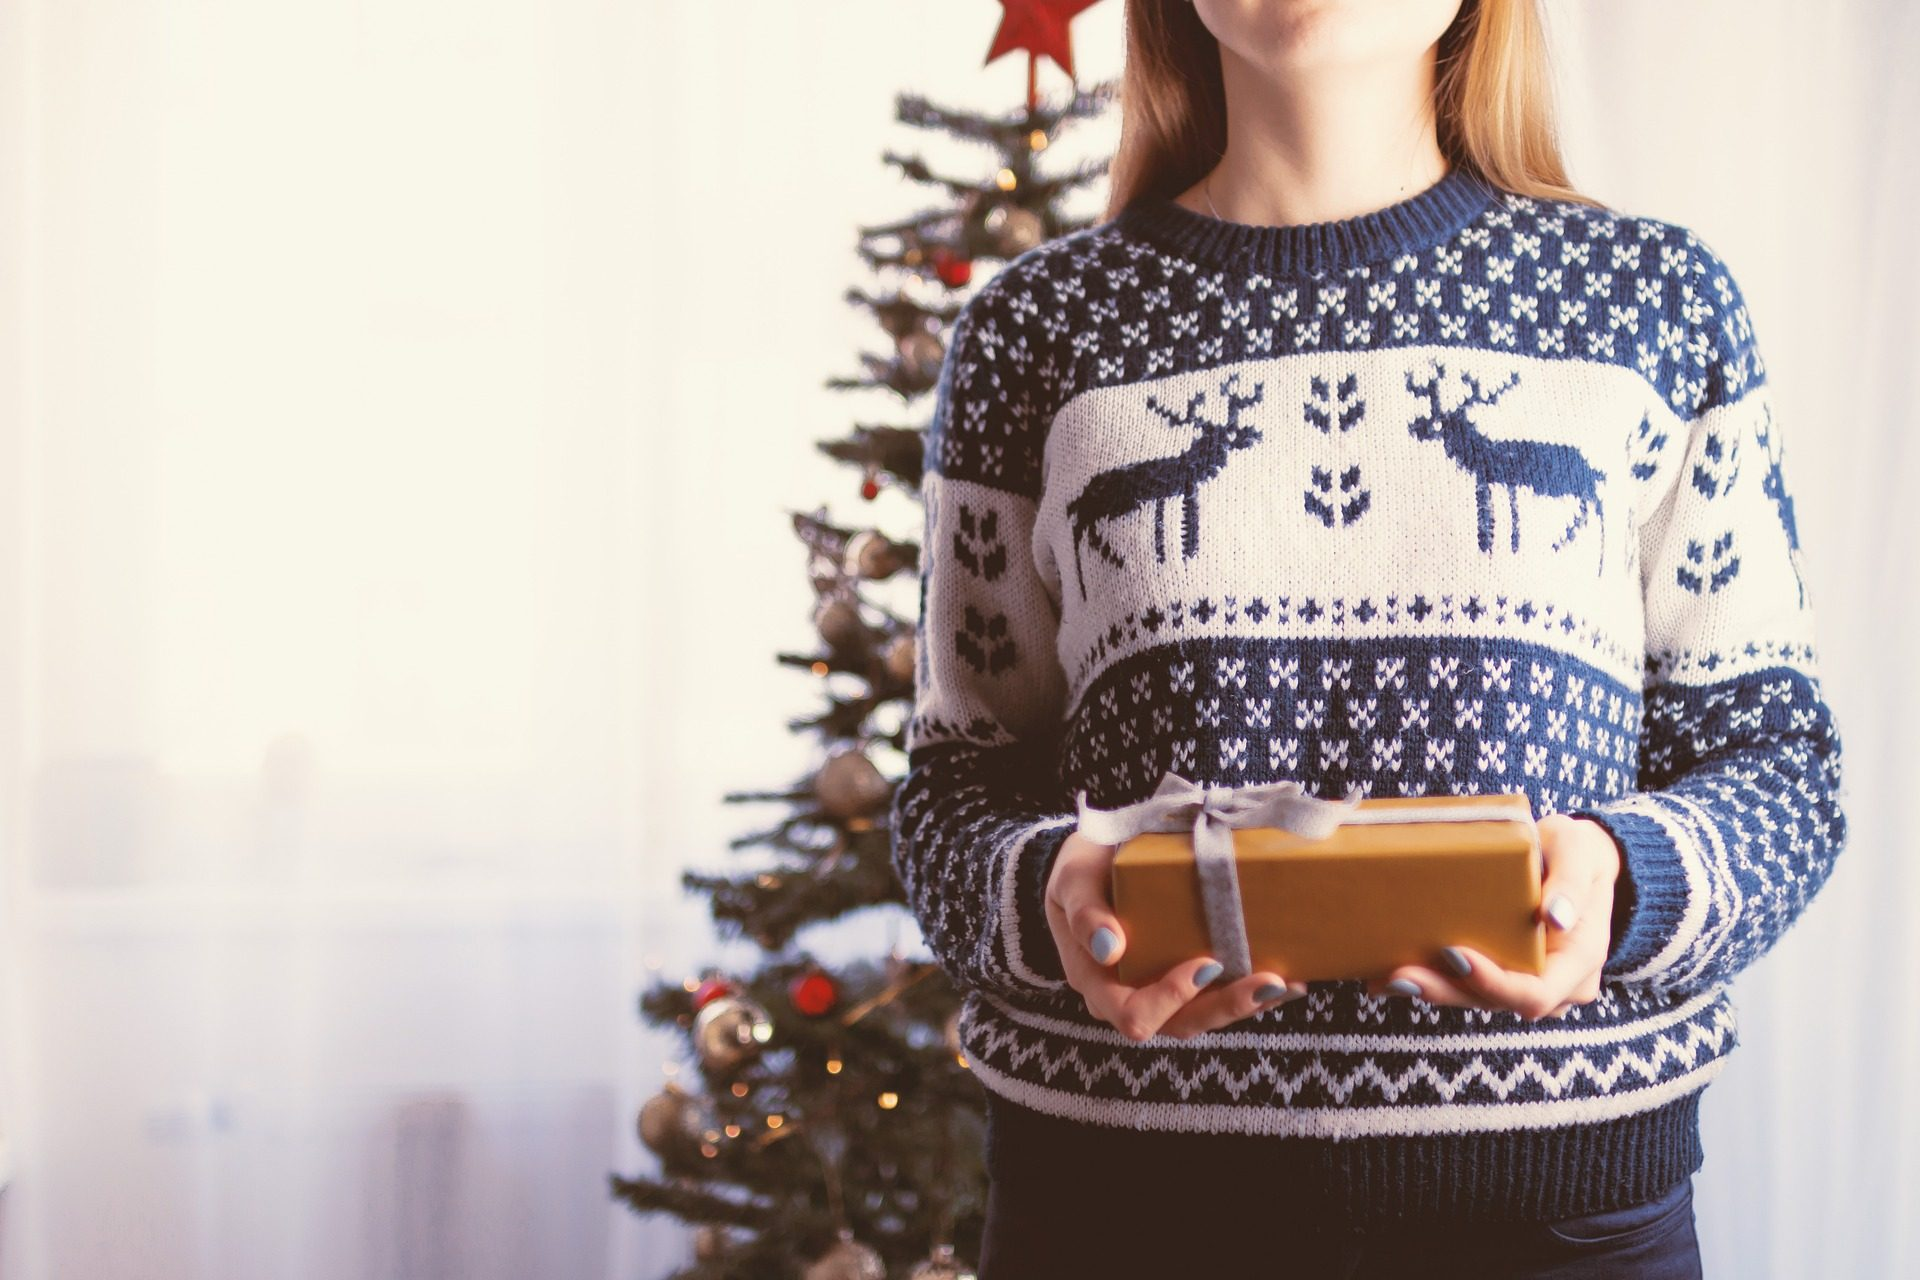 How many of us actually fake loving gifts? [+The Right way to deal with unwanted gifts]